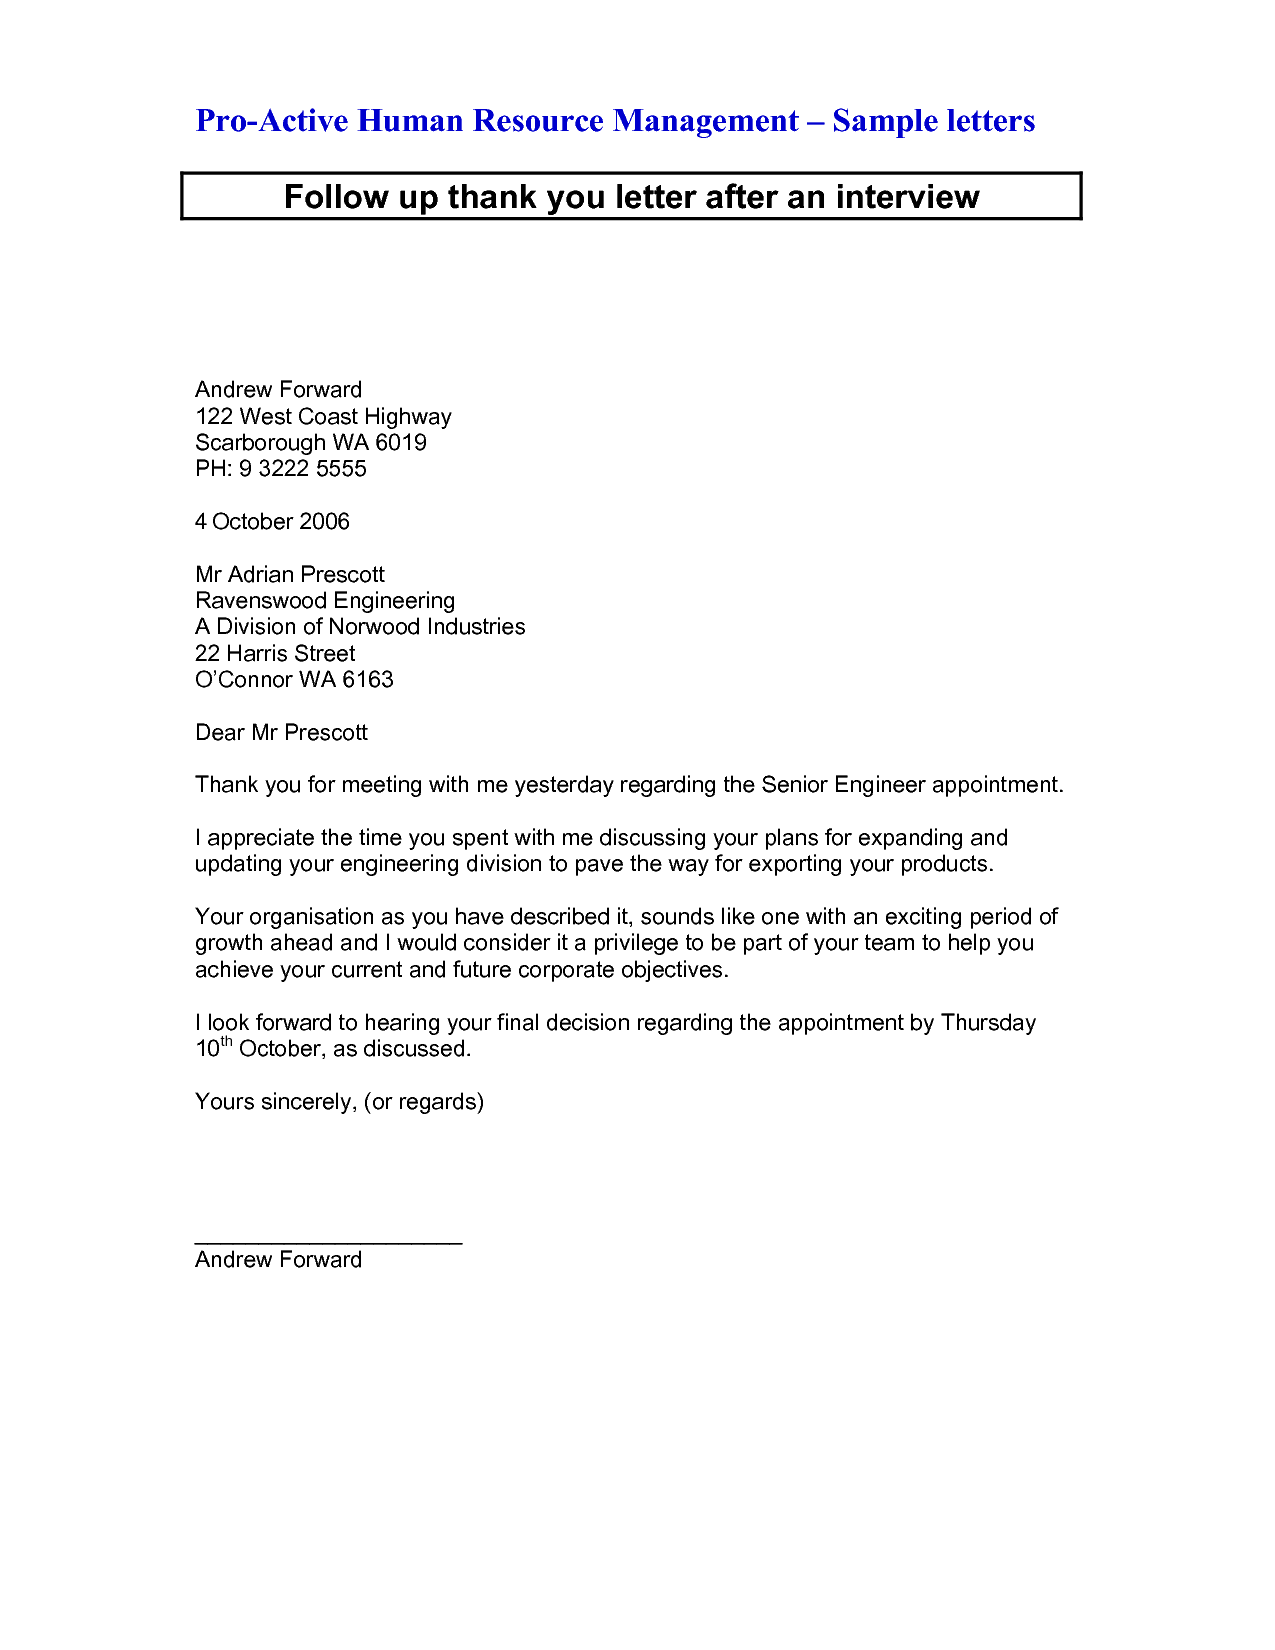 thank you letter after interview email sample phone